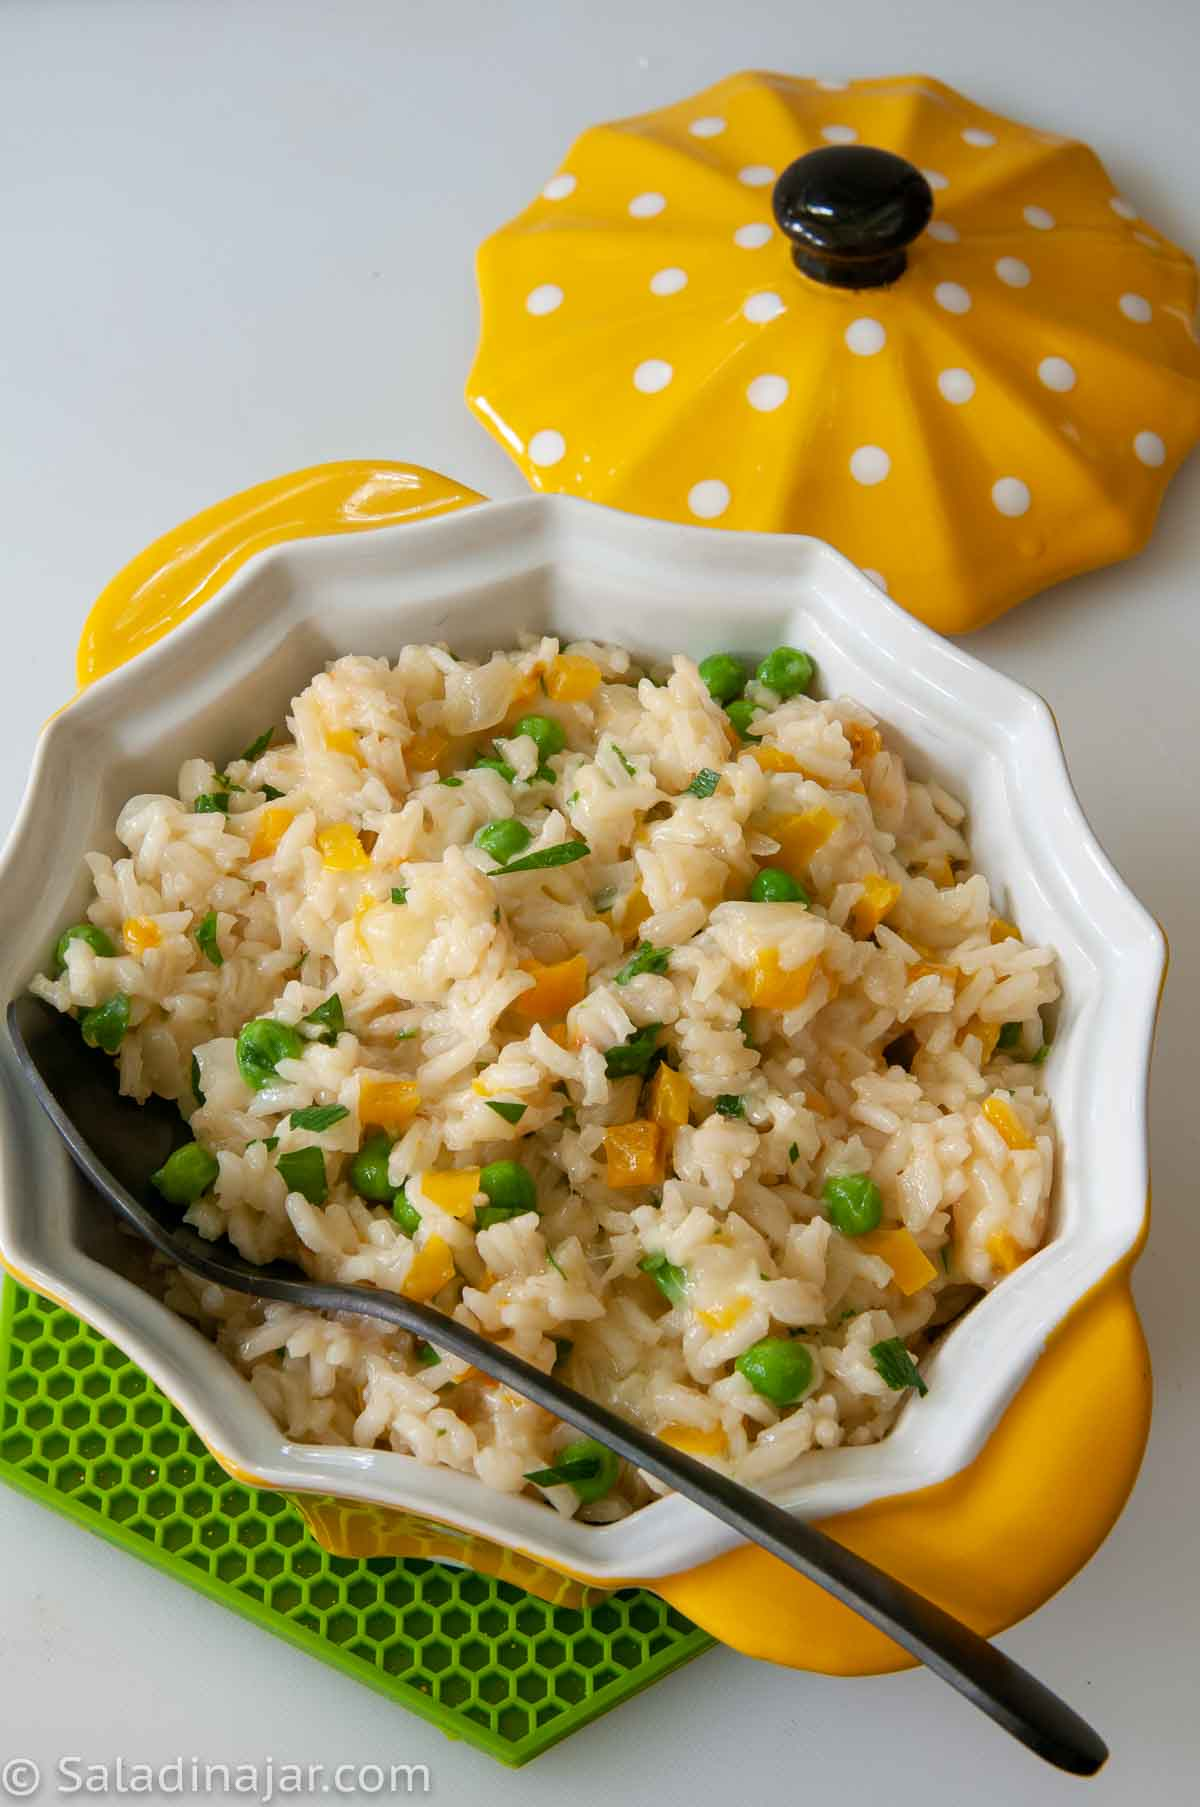 Ready-to-eat Rice and Cheese with Peas in a serving bowl